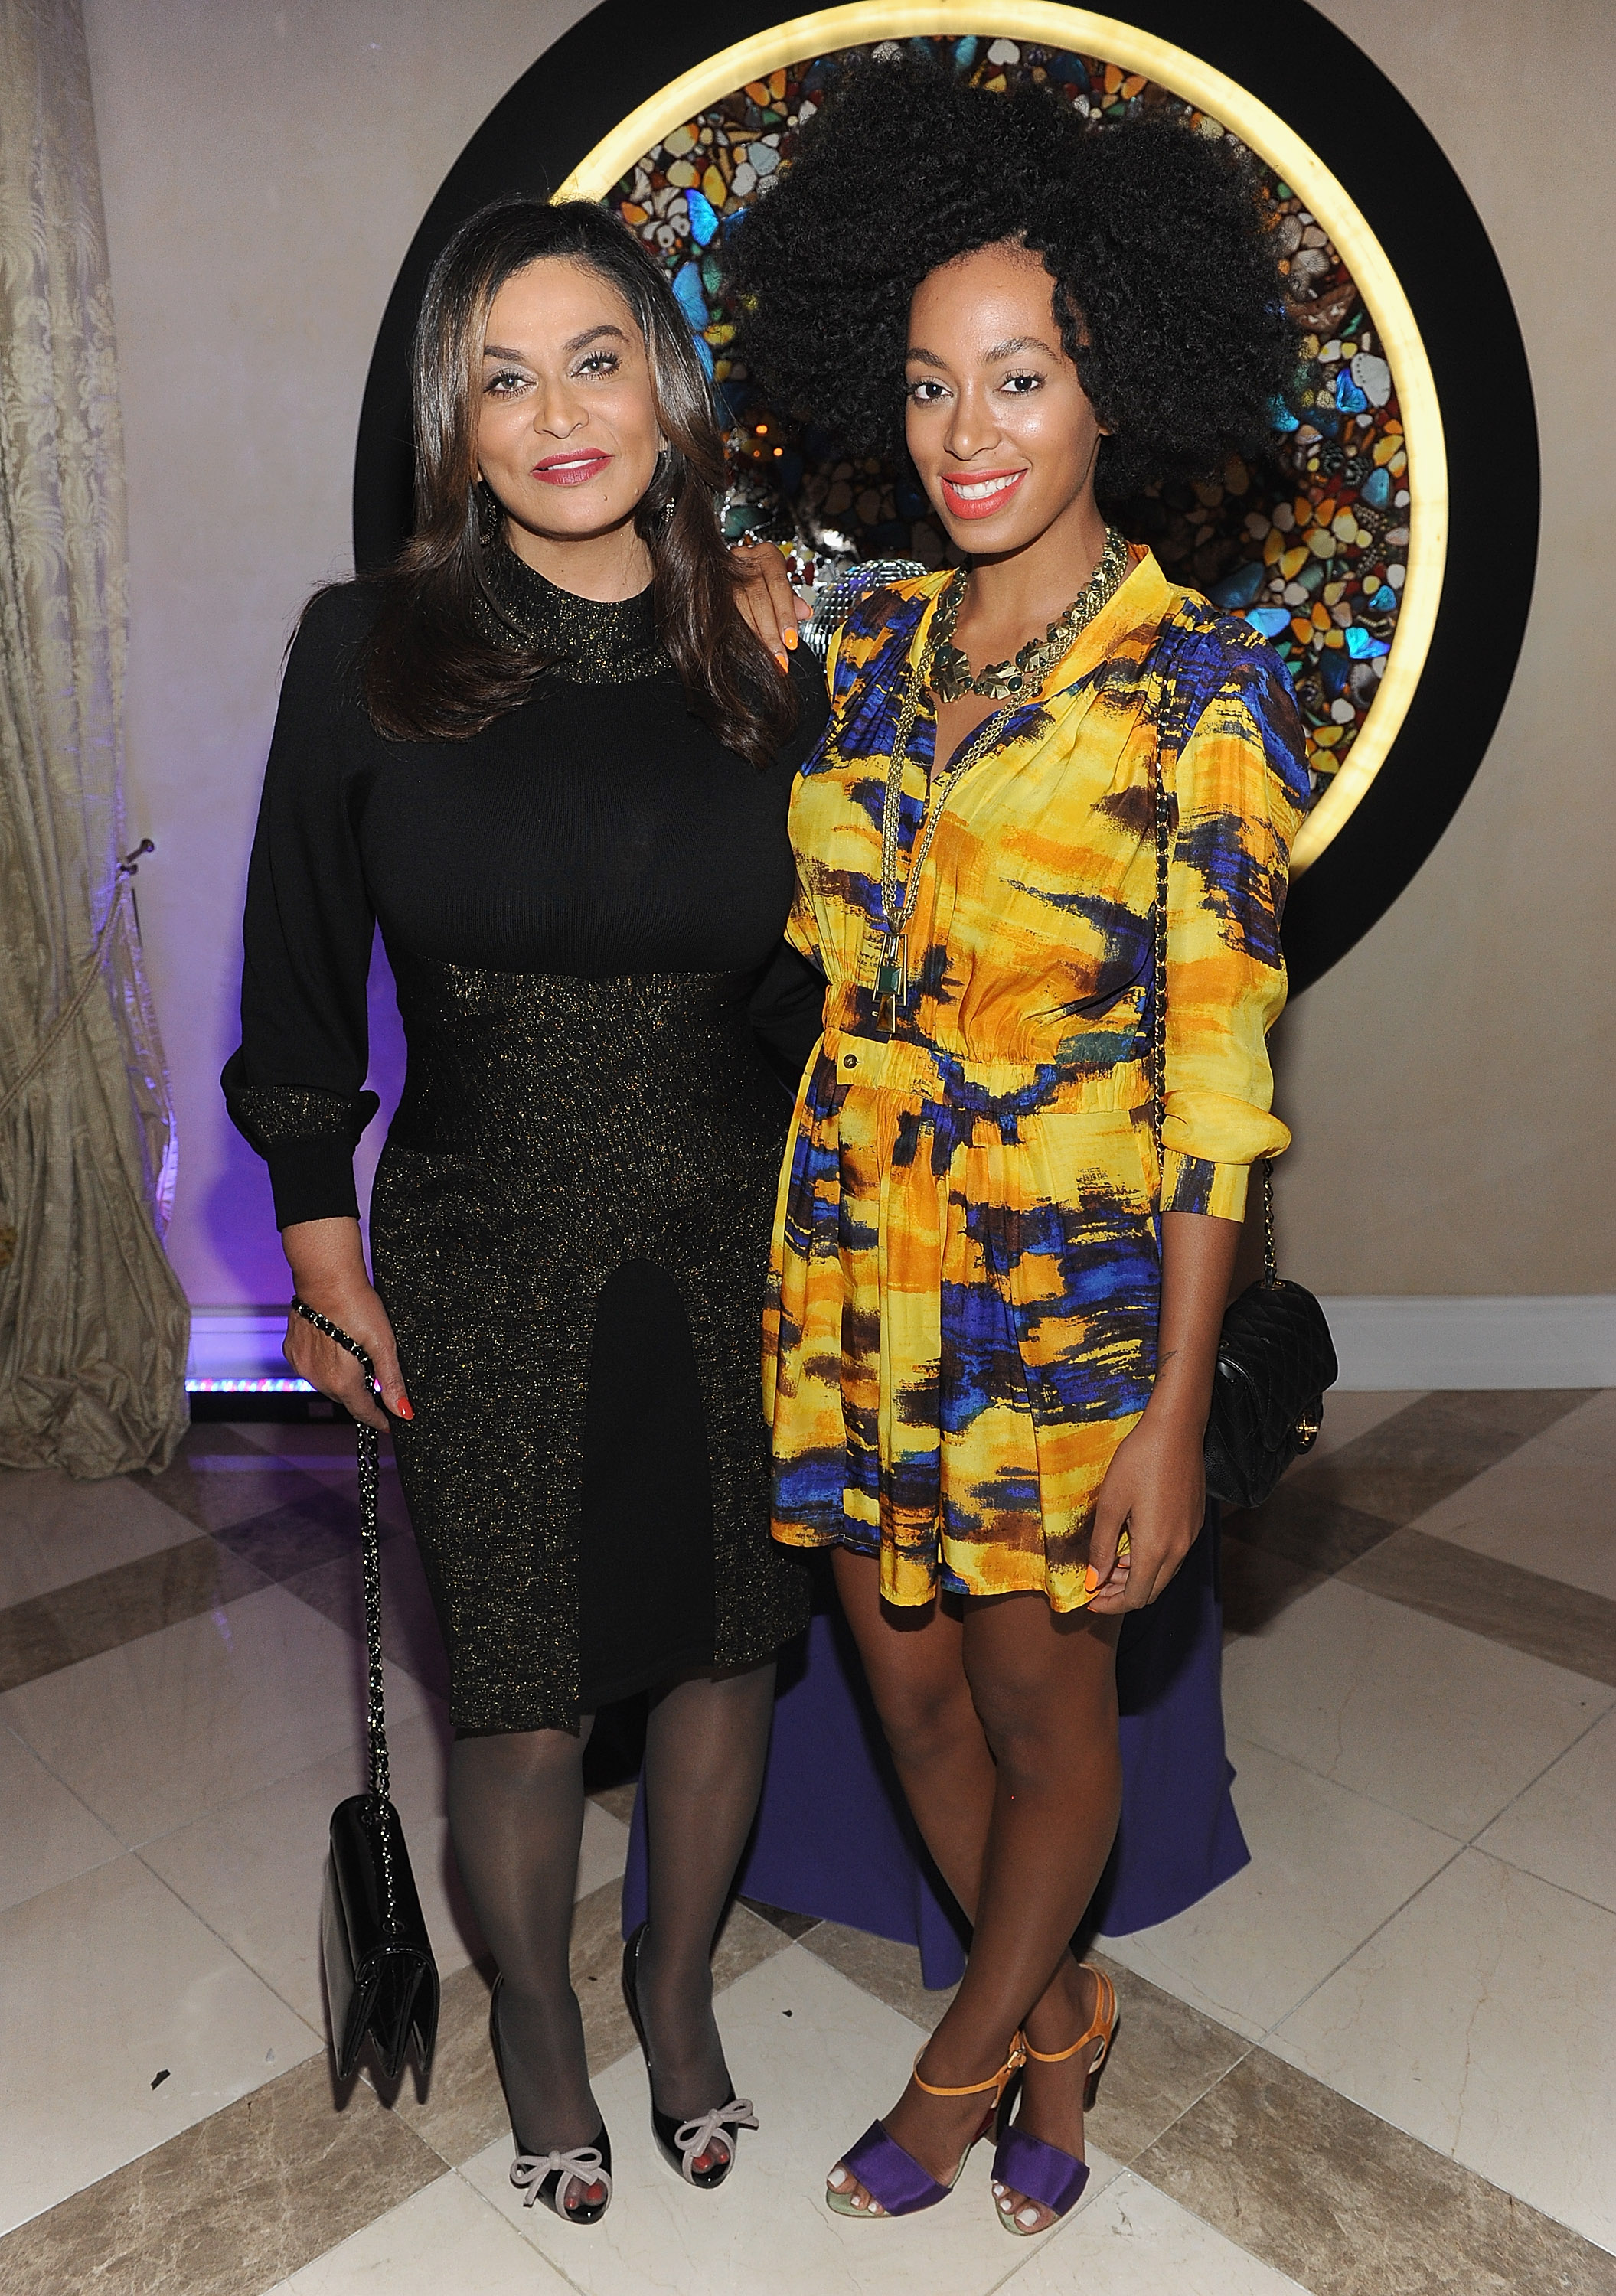 Total Management Hosts Fashion Week Party with Jade Jagger and Gilt City to Bring Awareness to Gabrielle's Angel Foundation